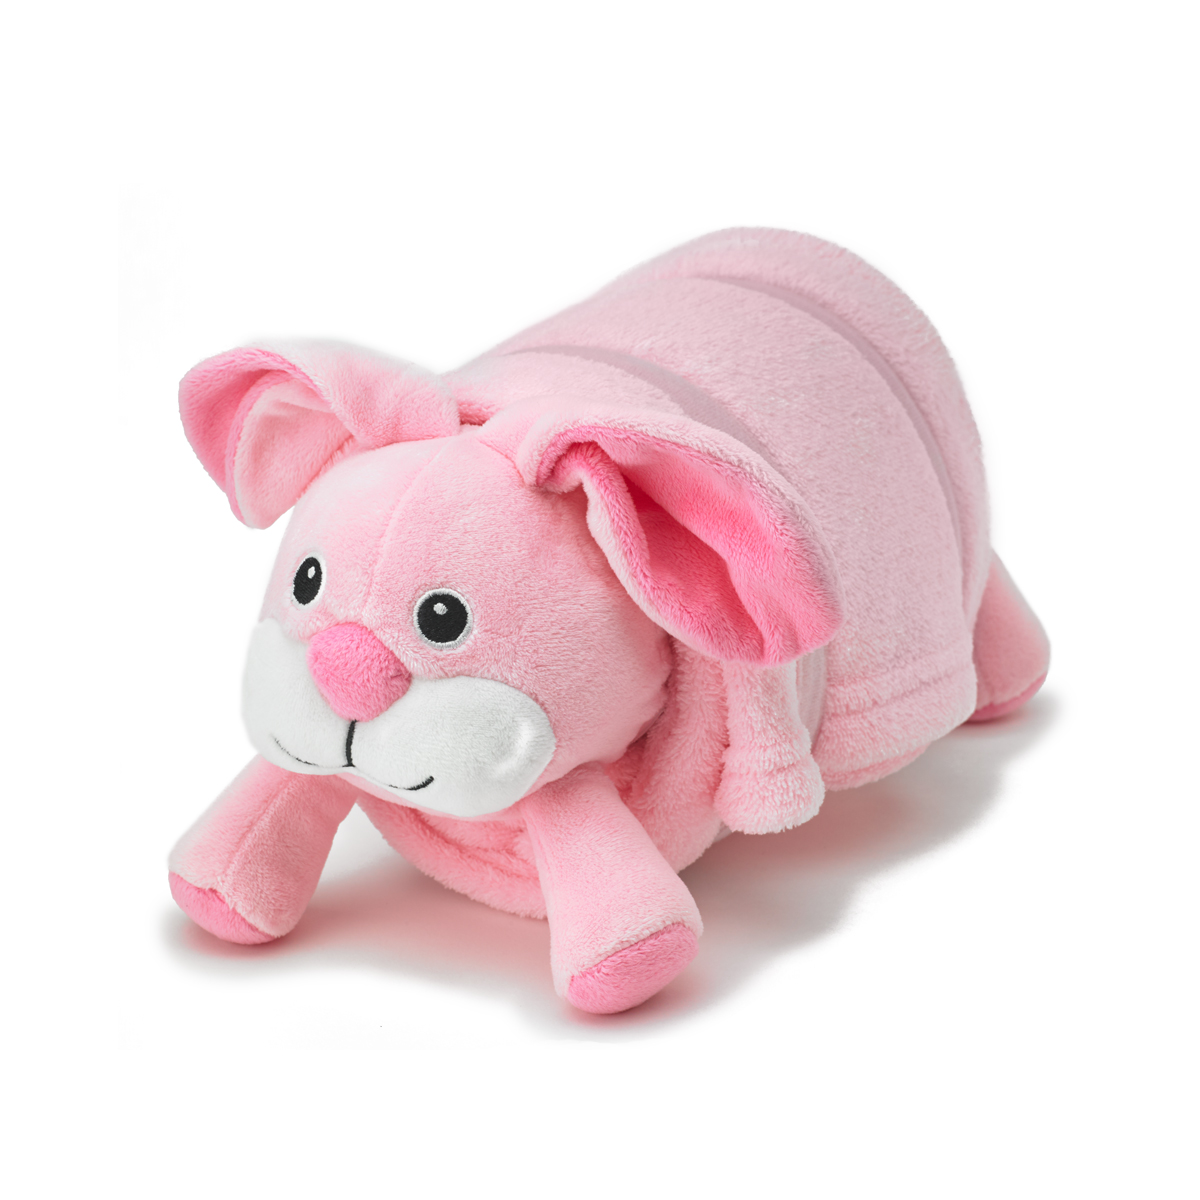 Pink Bunny Pet Plush Pillow with Blanket ? Nap Mat Cover Pillow + Blanket